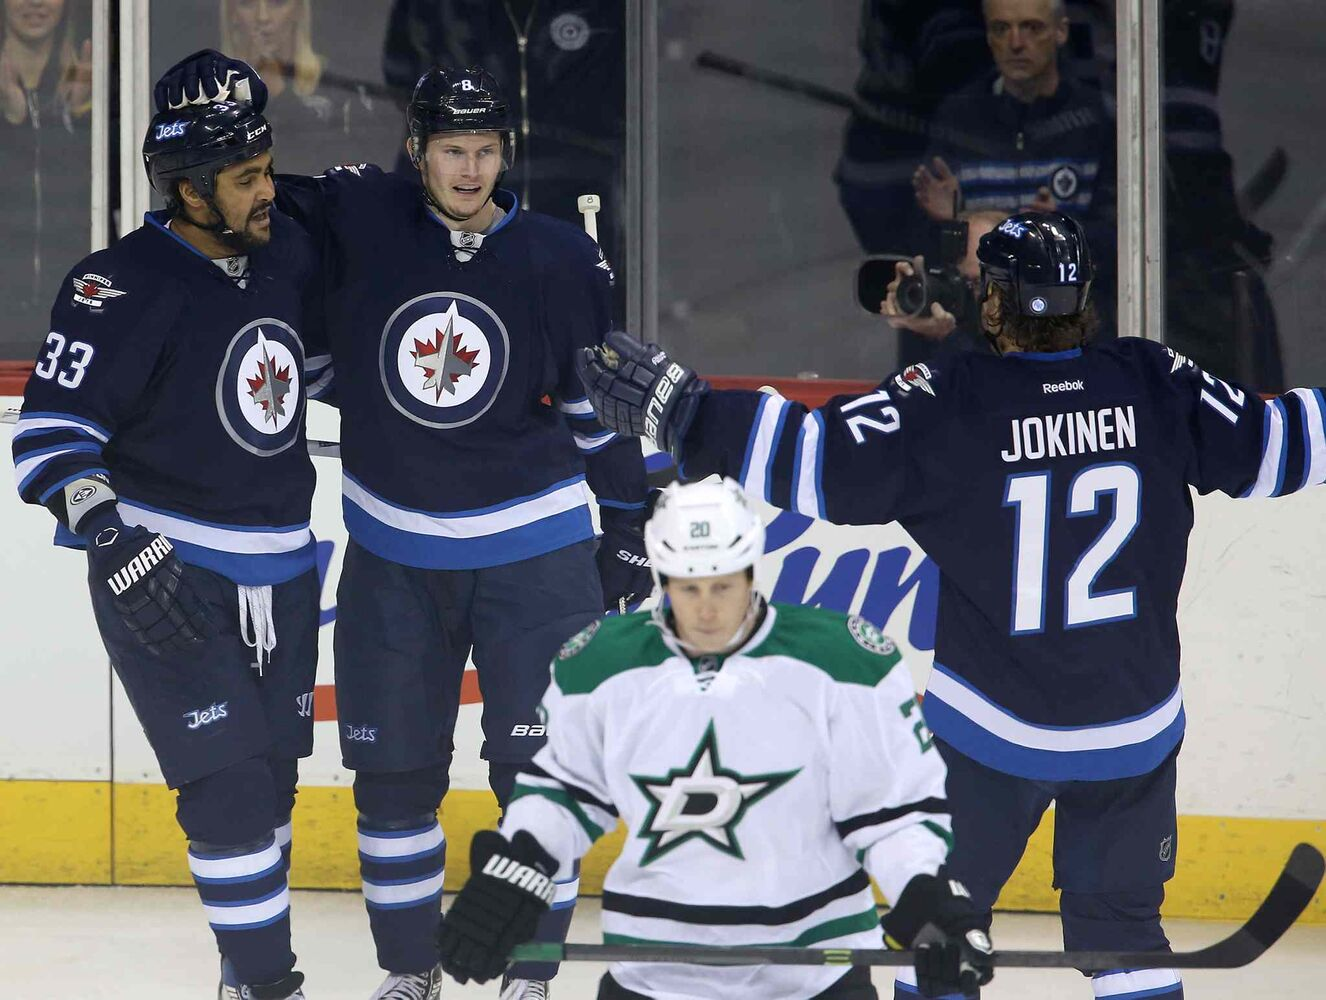 The Winnipeg Jets Dustin Byfuglien (33), Jacob Trouba (centre) and Olli Jokinen celebrate Trouba's goal against the Dallas Stars' as Cody Eakin (20) looks on during the first period. (TREVOR HAGAN / THE CANADIAN PRESS)